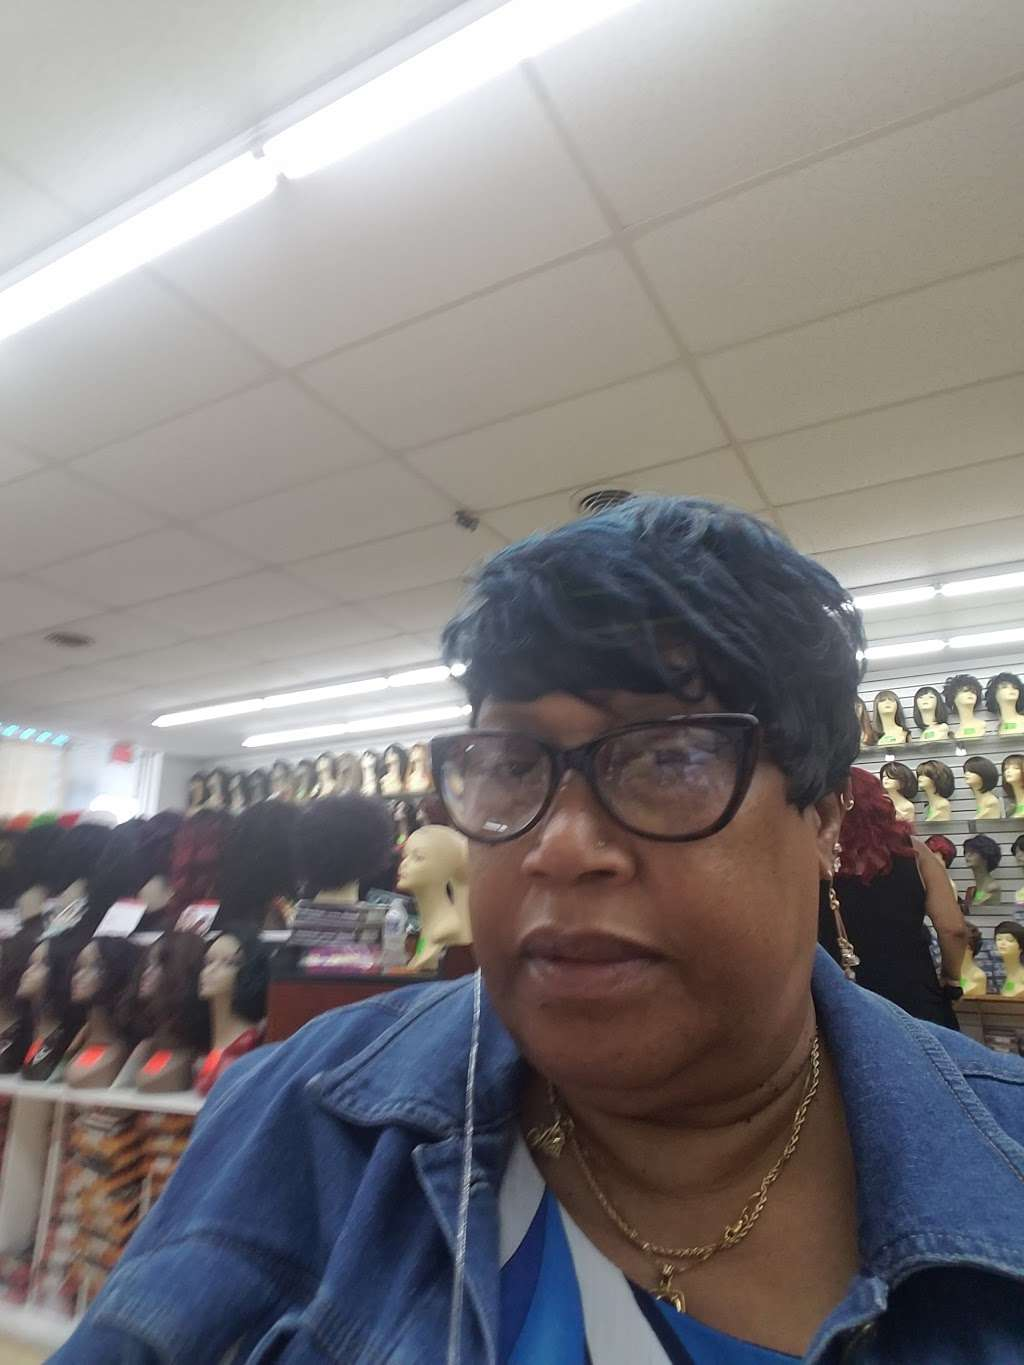 Wig Outlet - hair care  | Photo 3 of 4 | Address: 6001 Marlboro Pike, District Heights, MD 20747, USA | Phone: (301) 735-1090